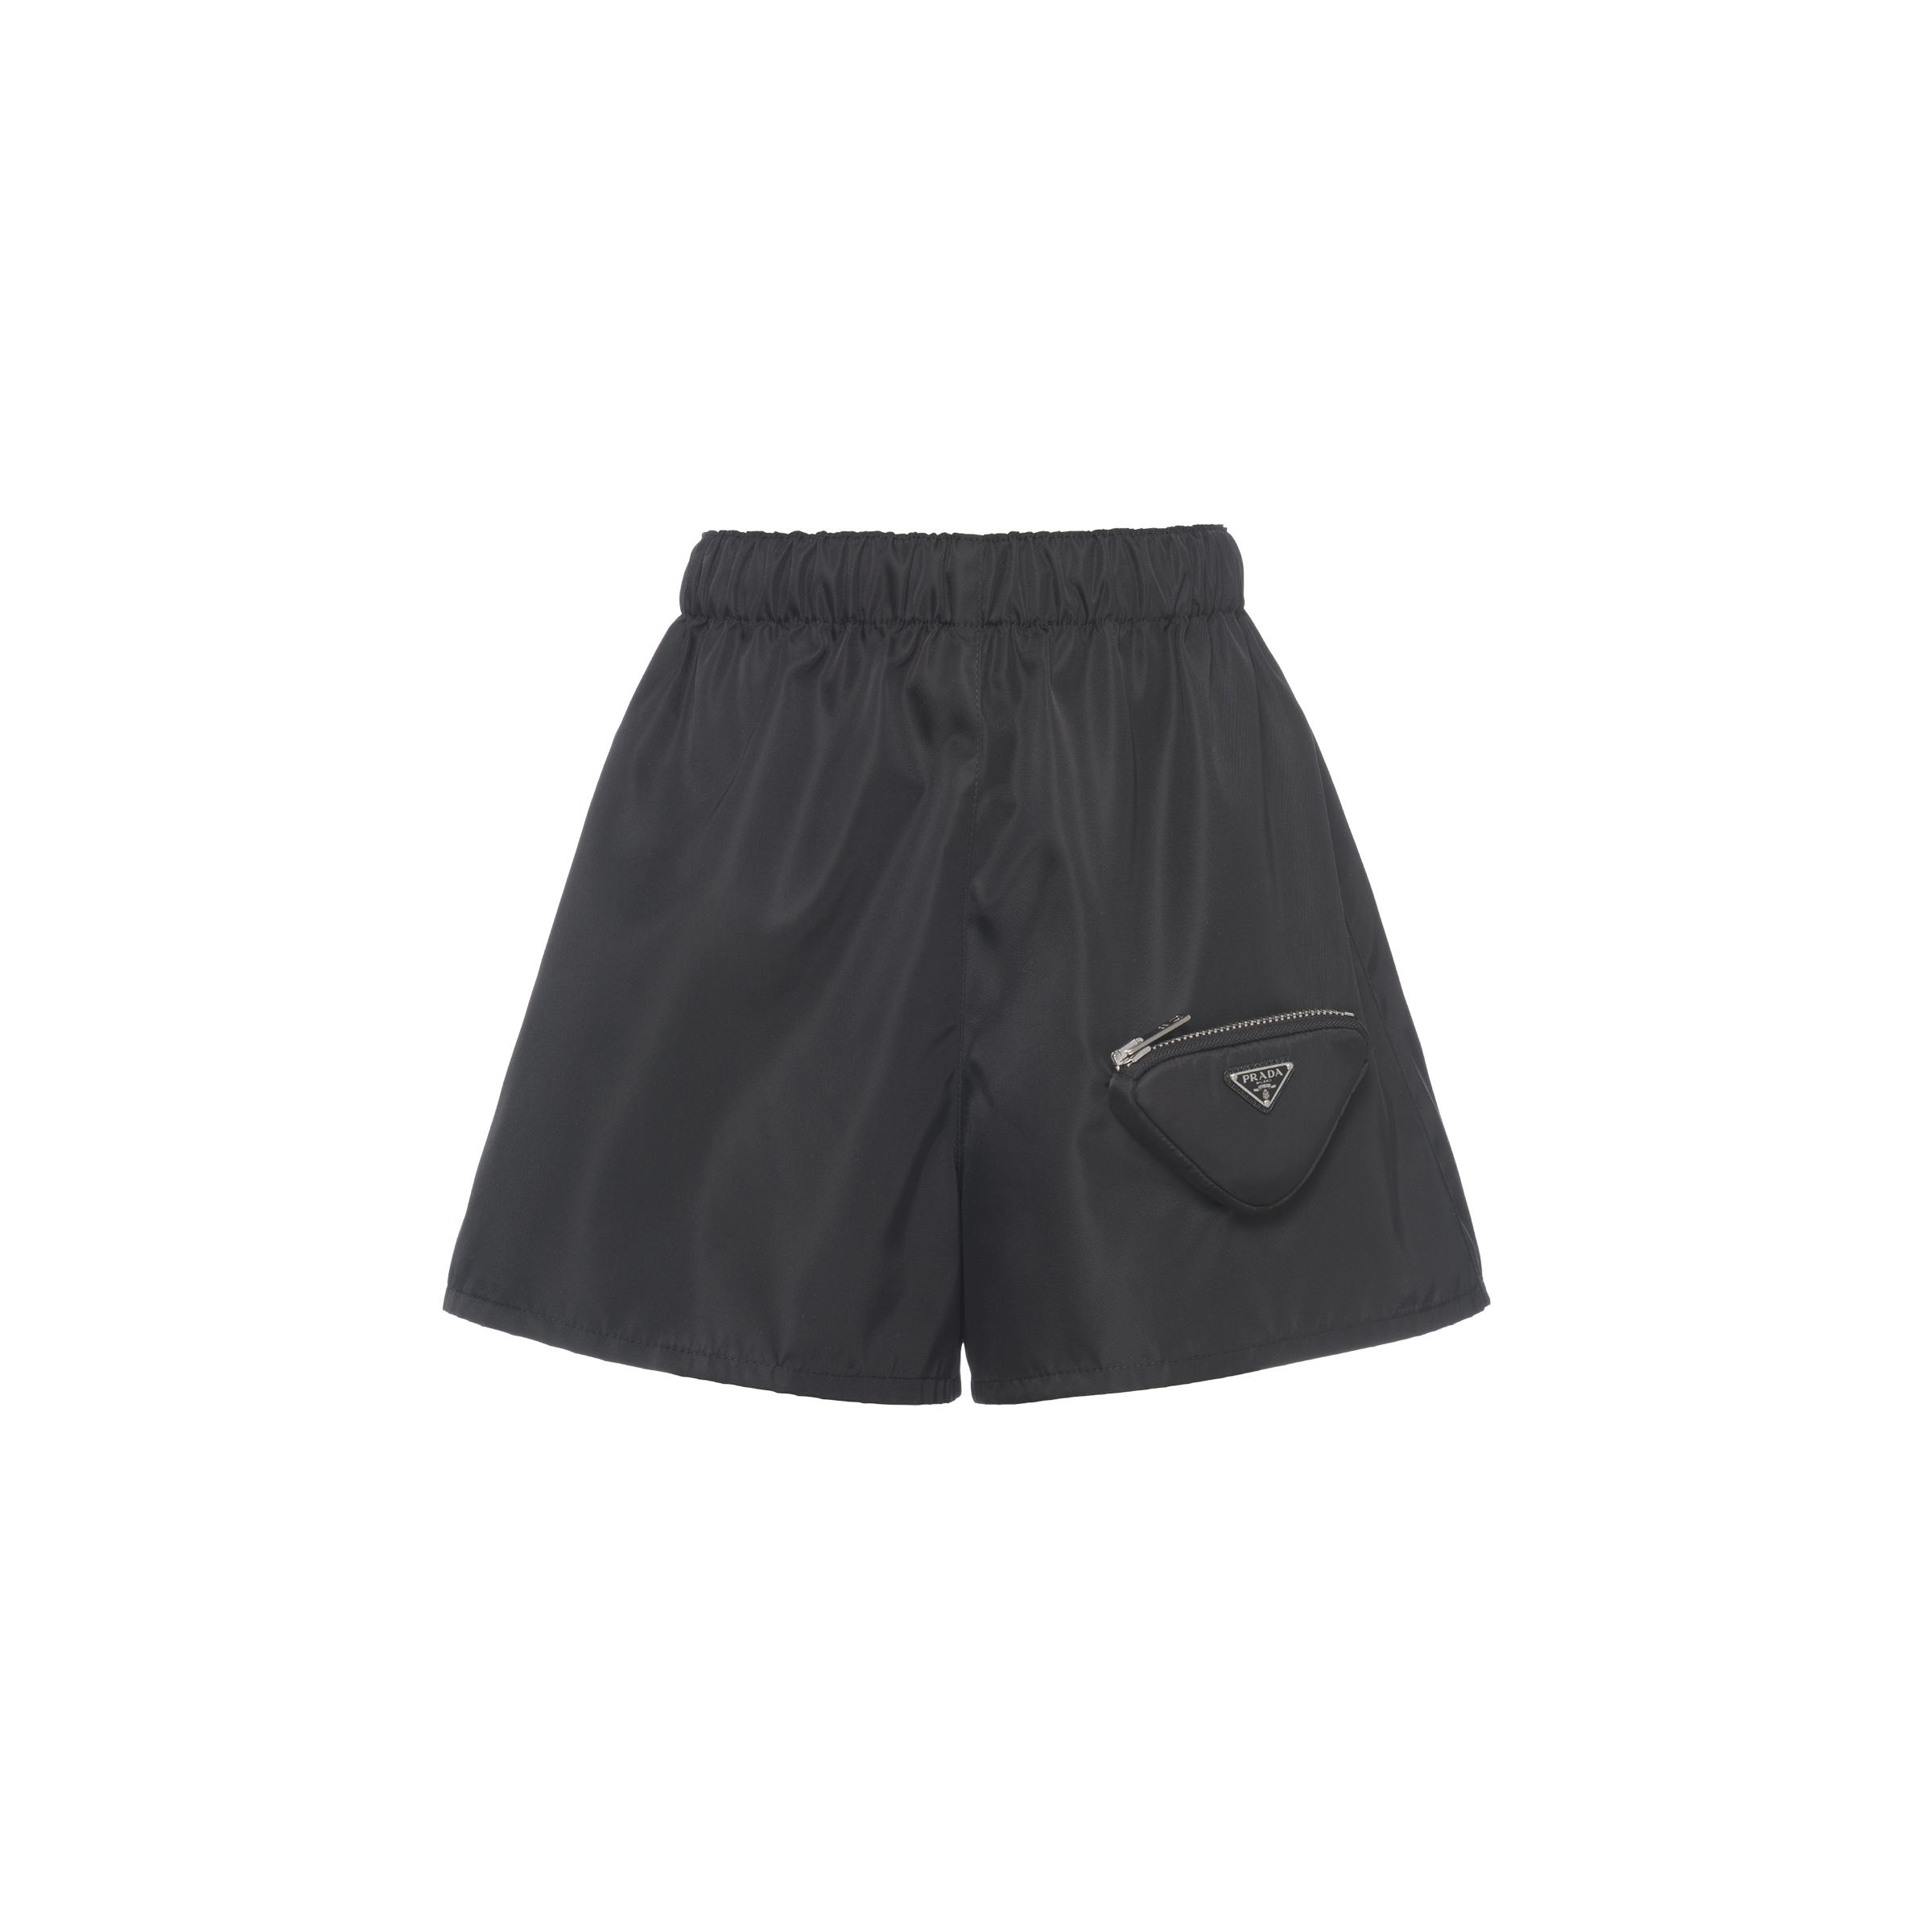 Re-nylon Shorts With Pouch Women Black